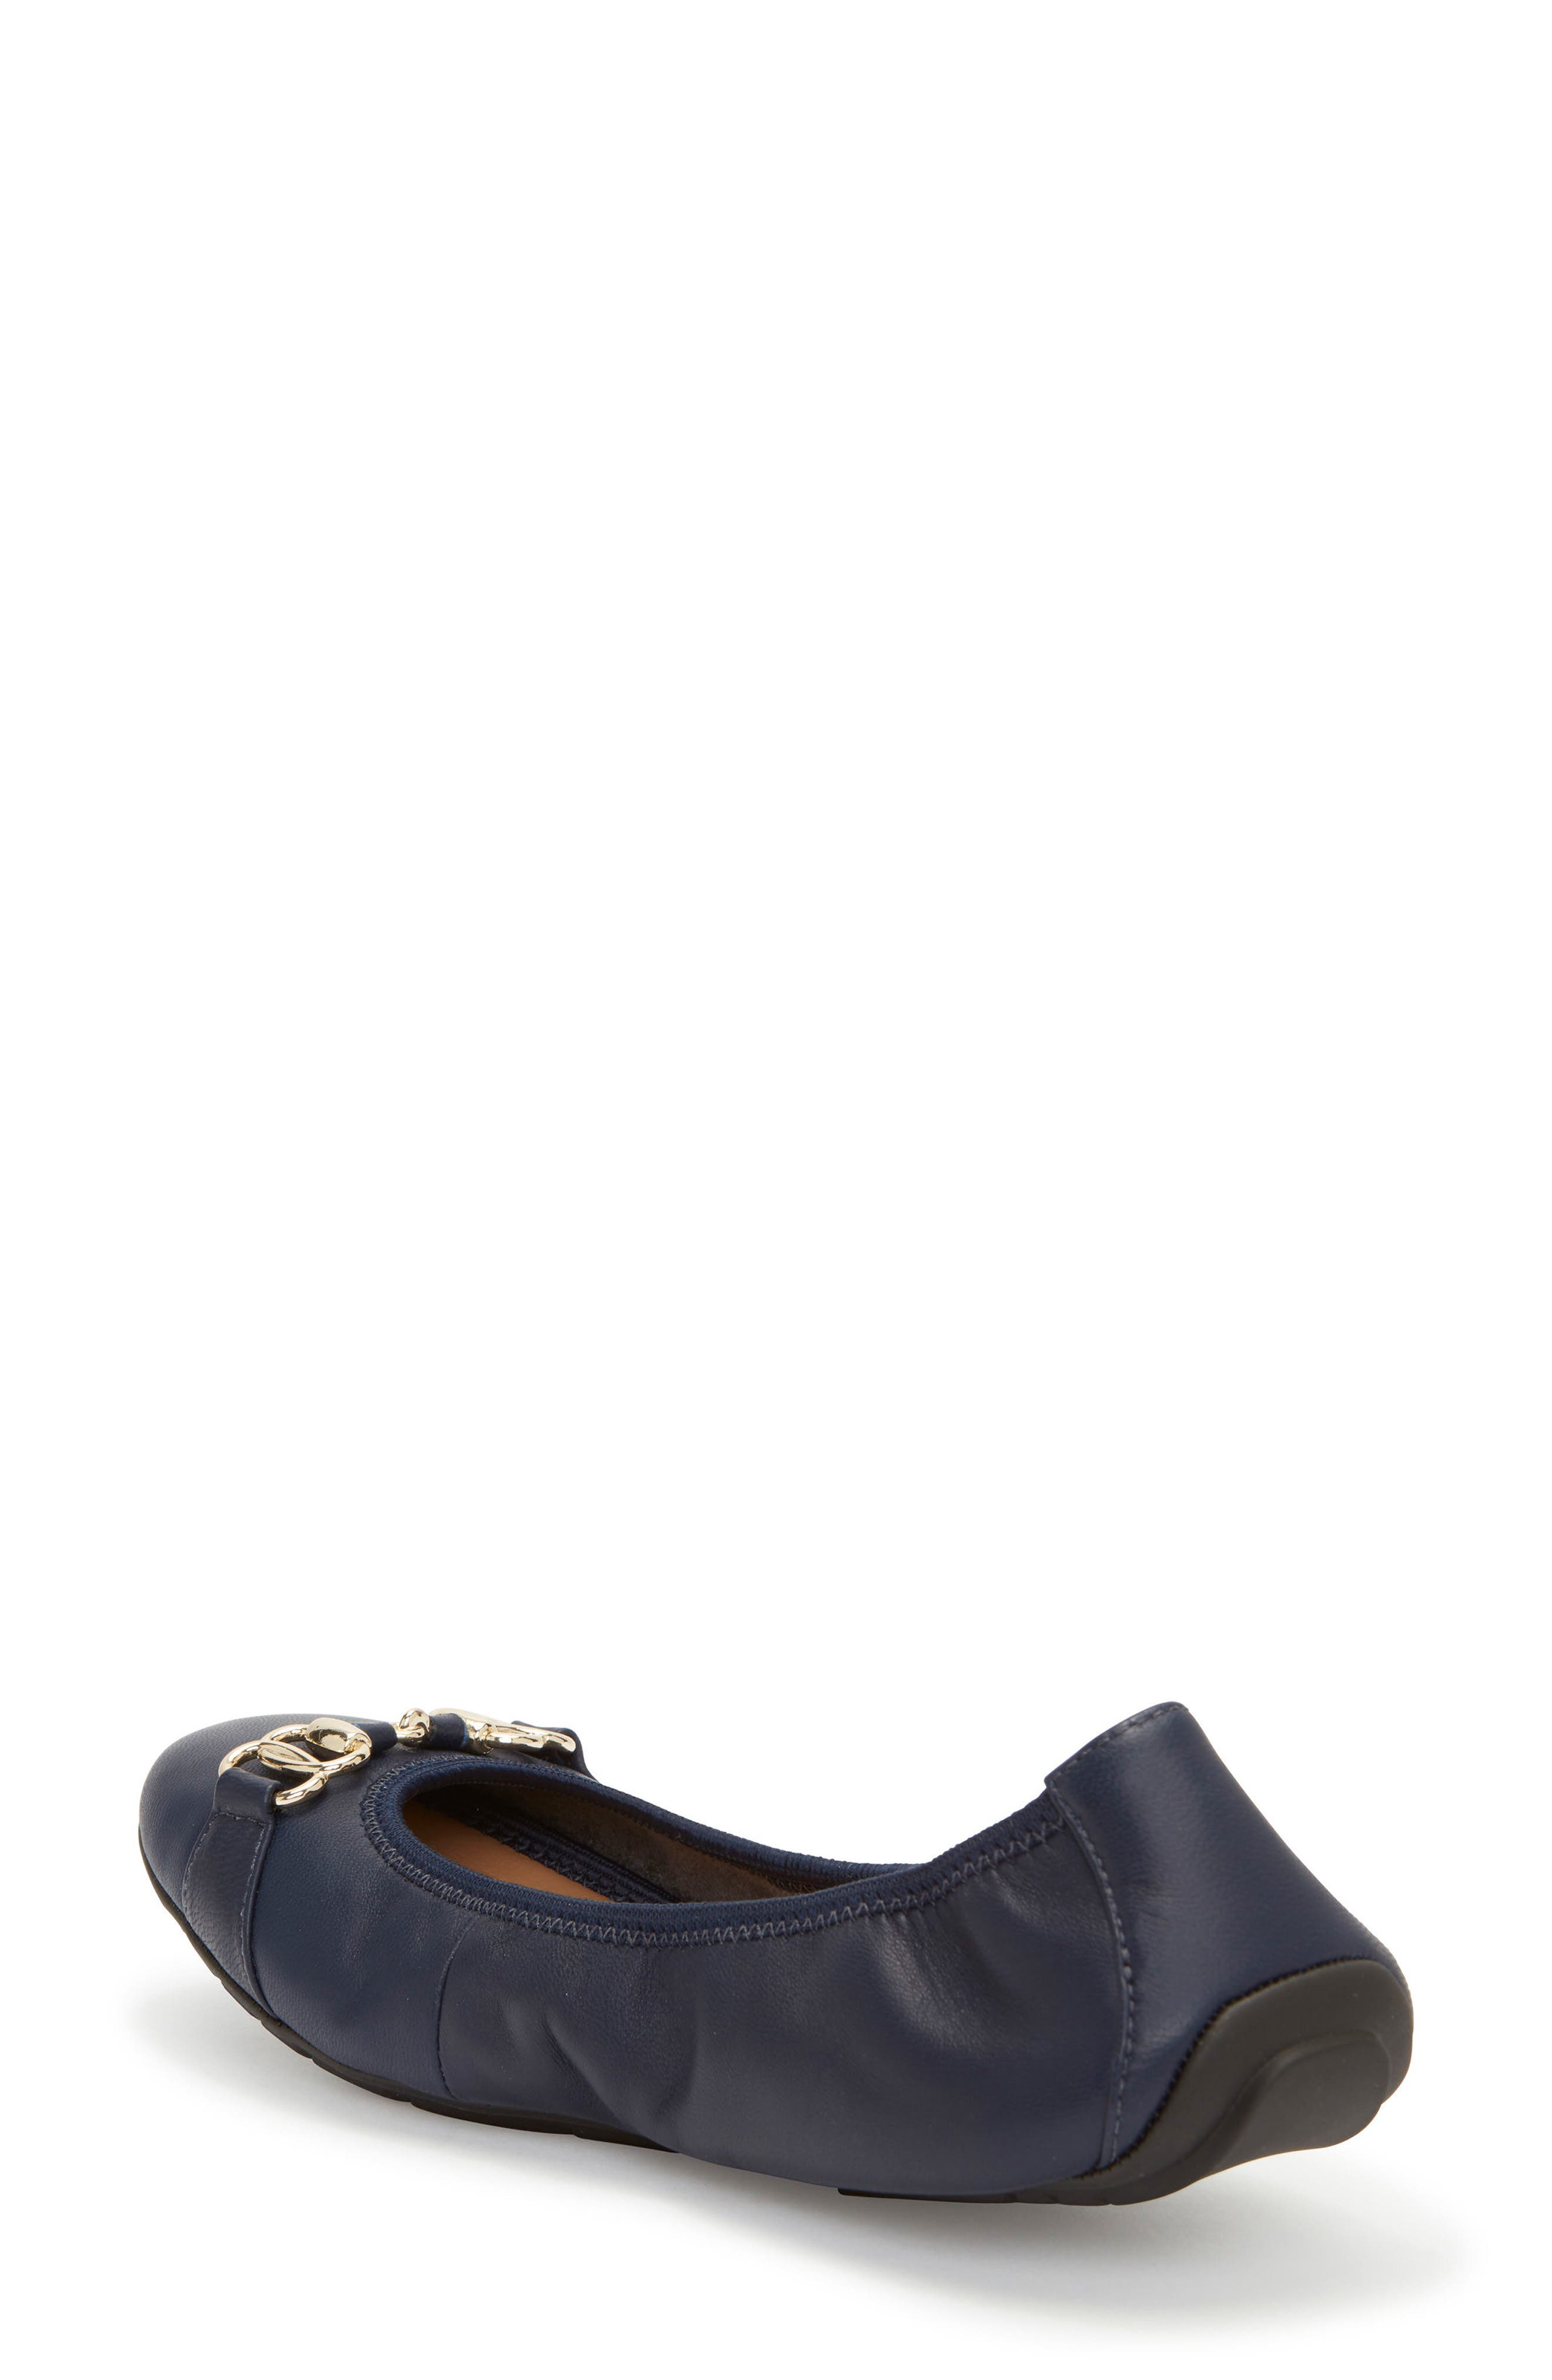 Olympia Skimmer Flat,                             Alternate thumbnail 2, color,                             Navy Leather